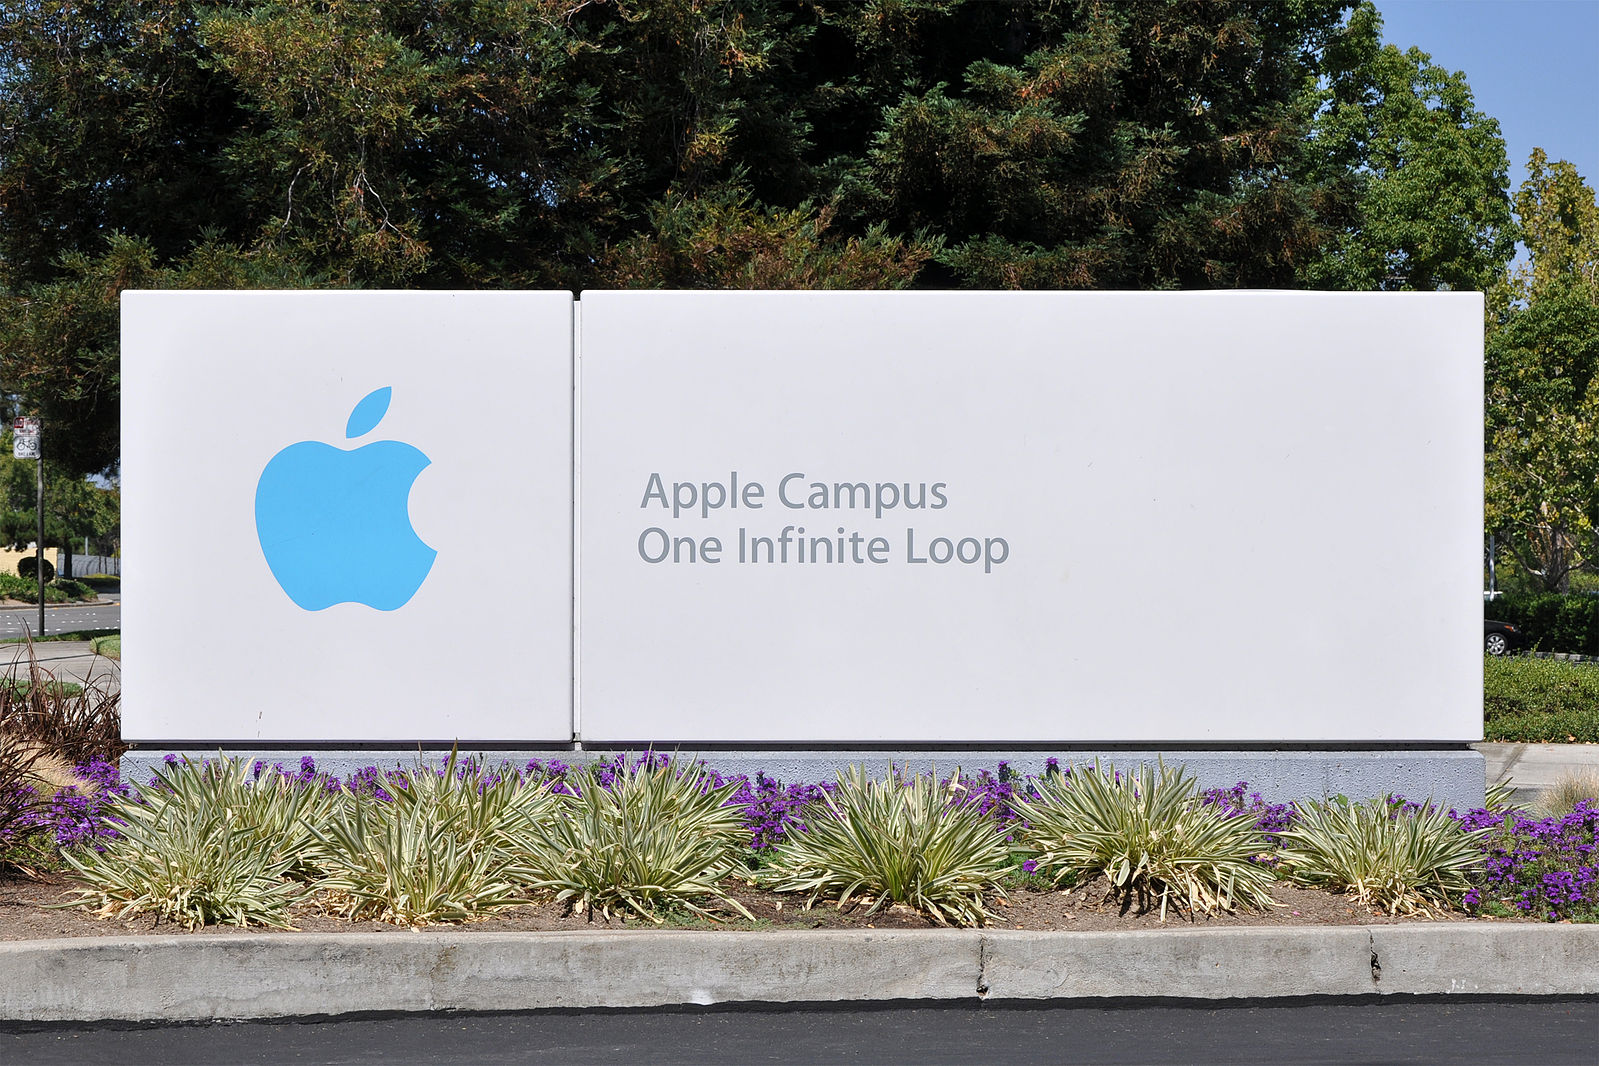 The new Apple campus has a 100,000 sqft gym and no daycare